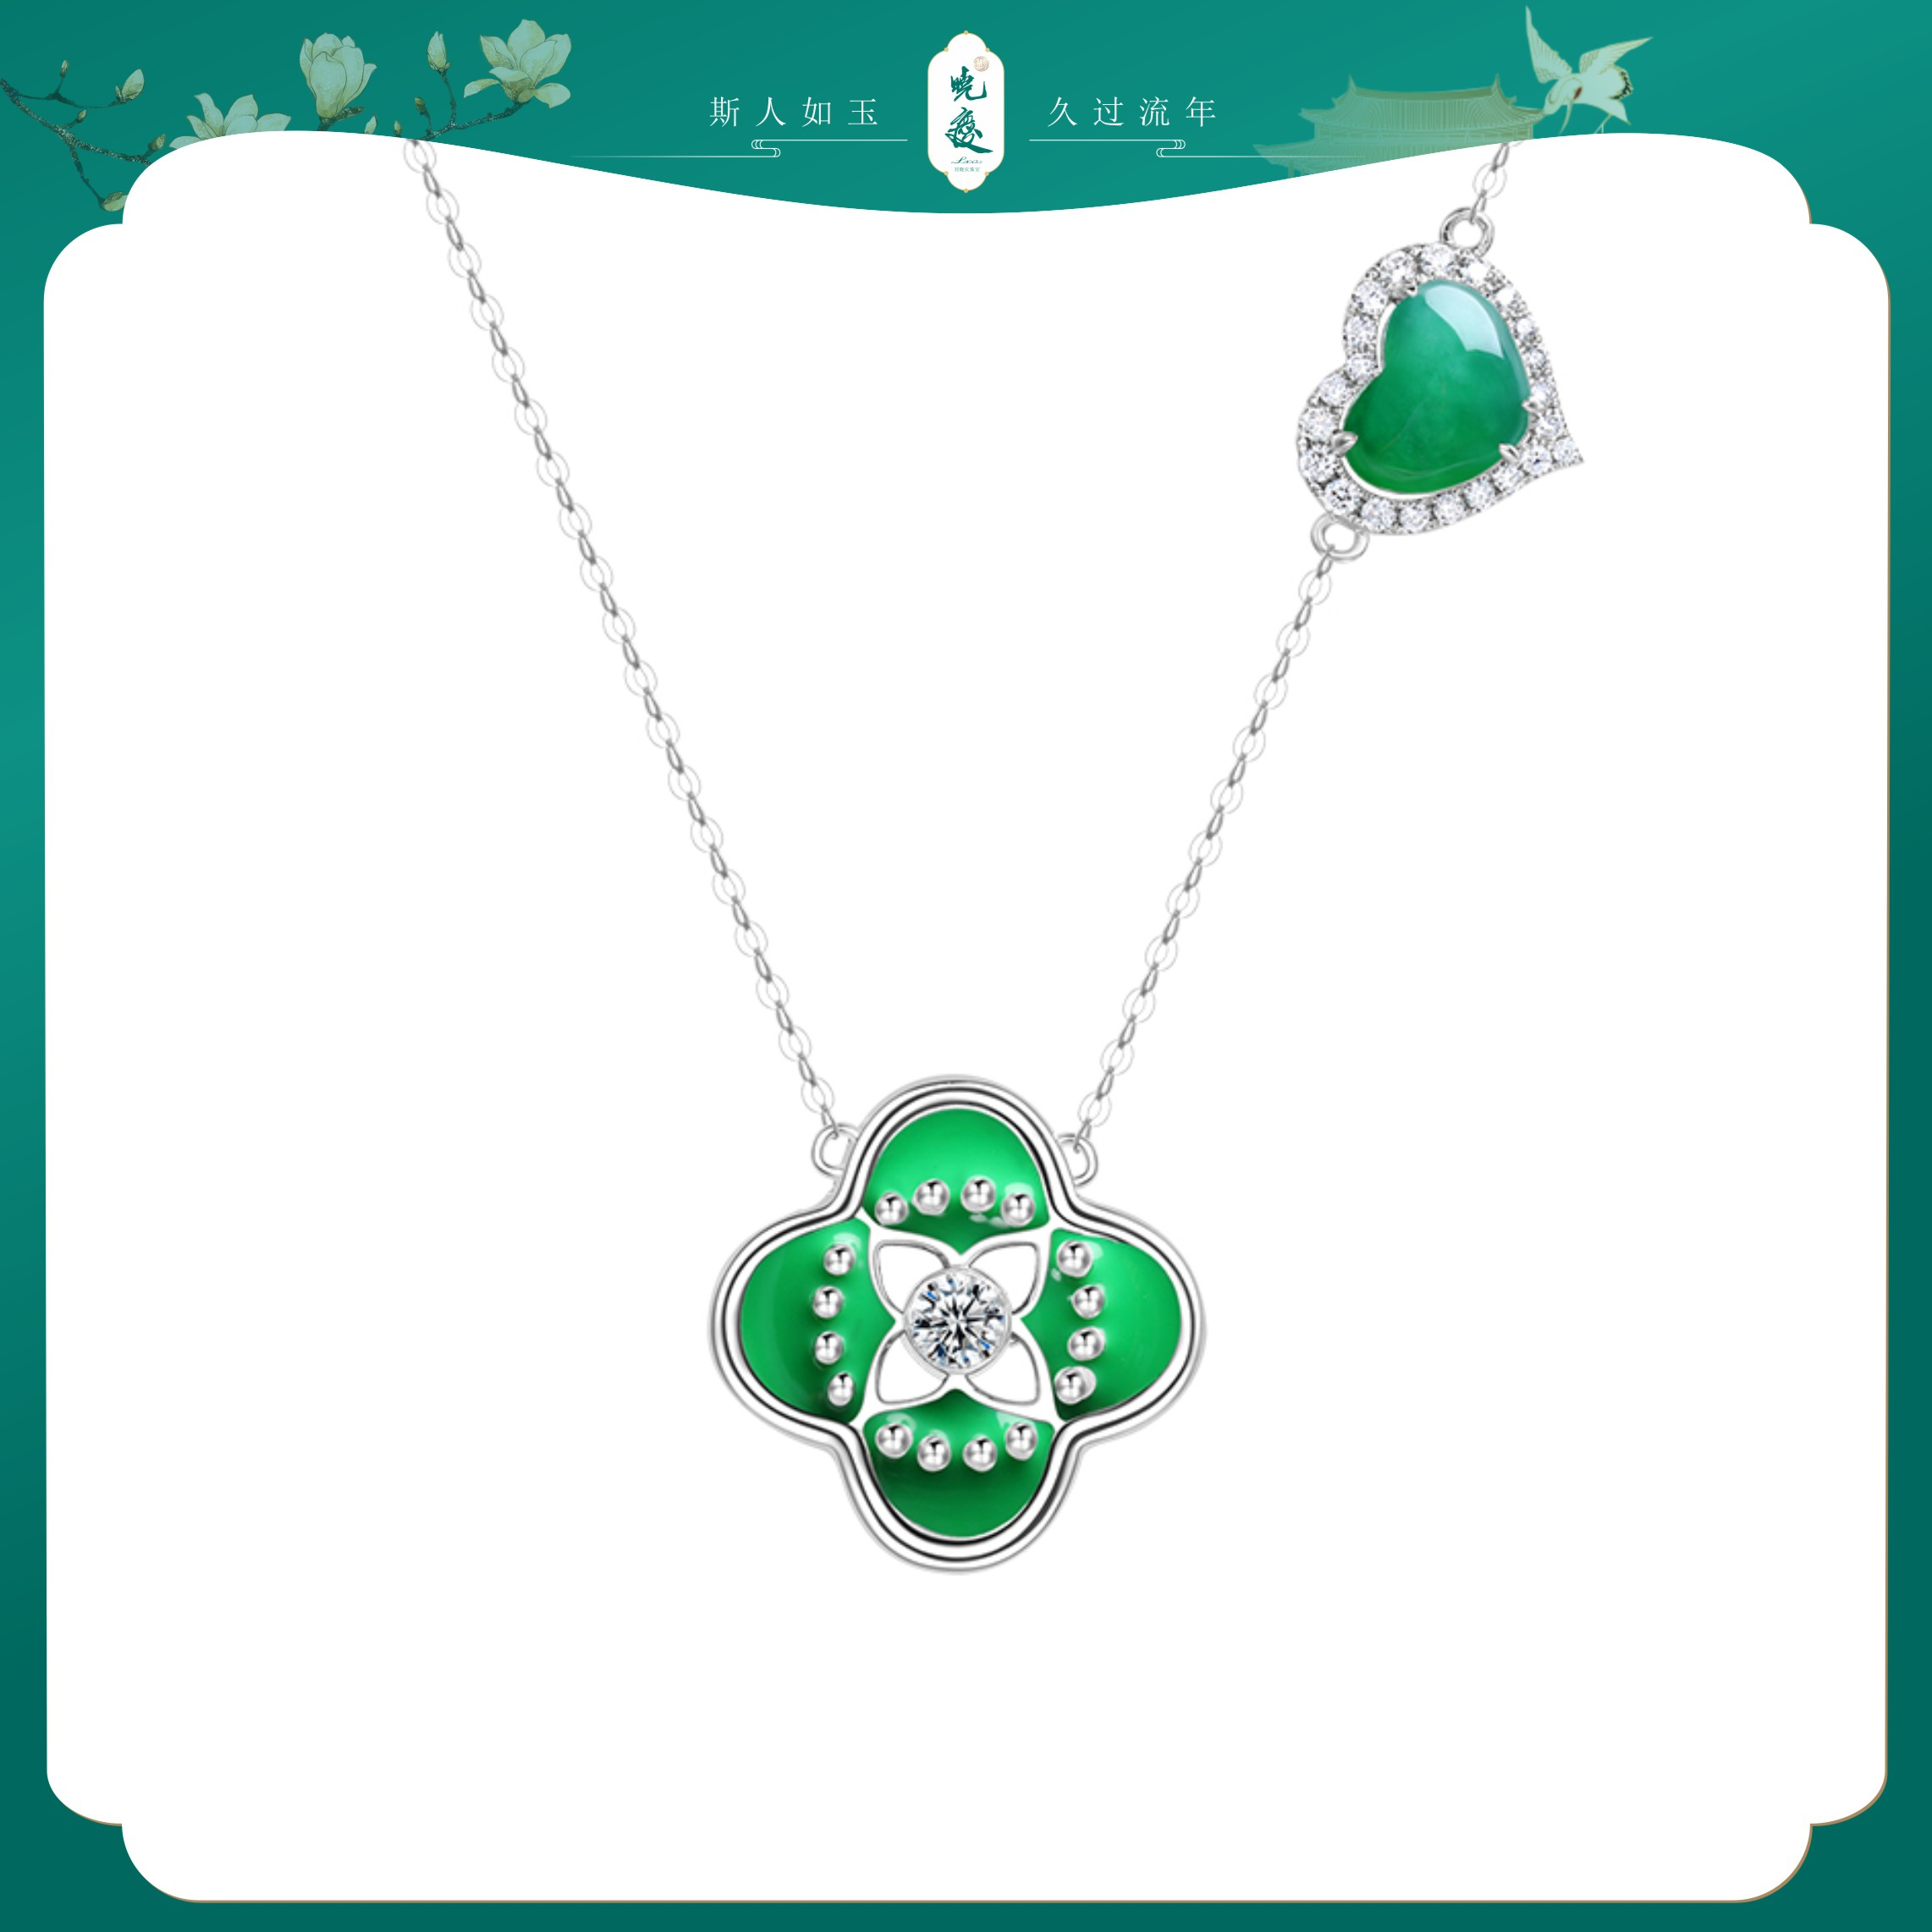 Liu Xiaoqing jewelry [heart] natural A-goods jade high ice green 18K gold diamond inlaid Necklace